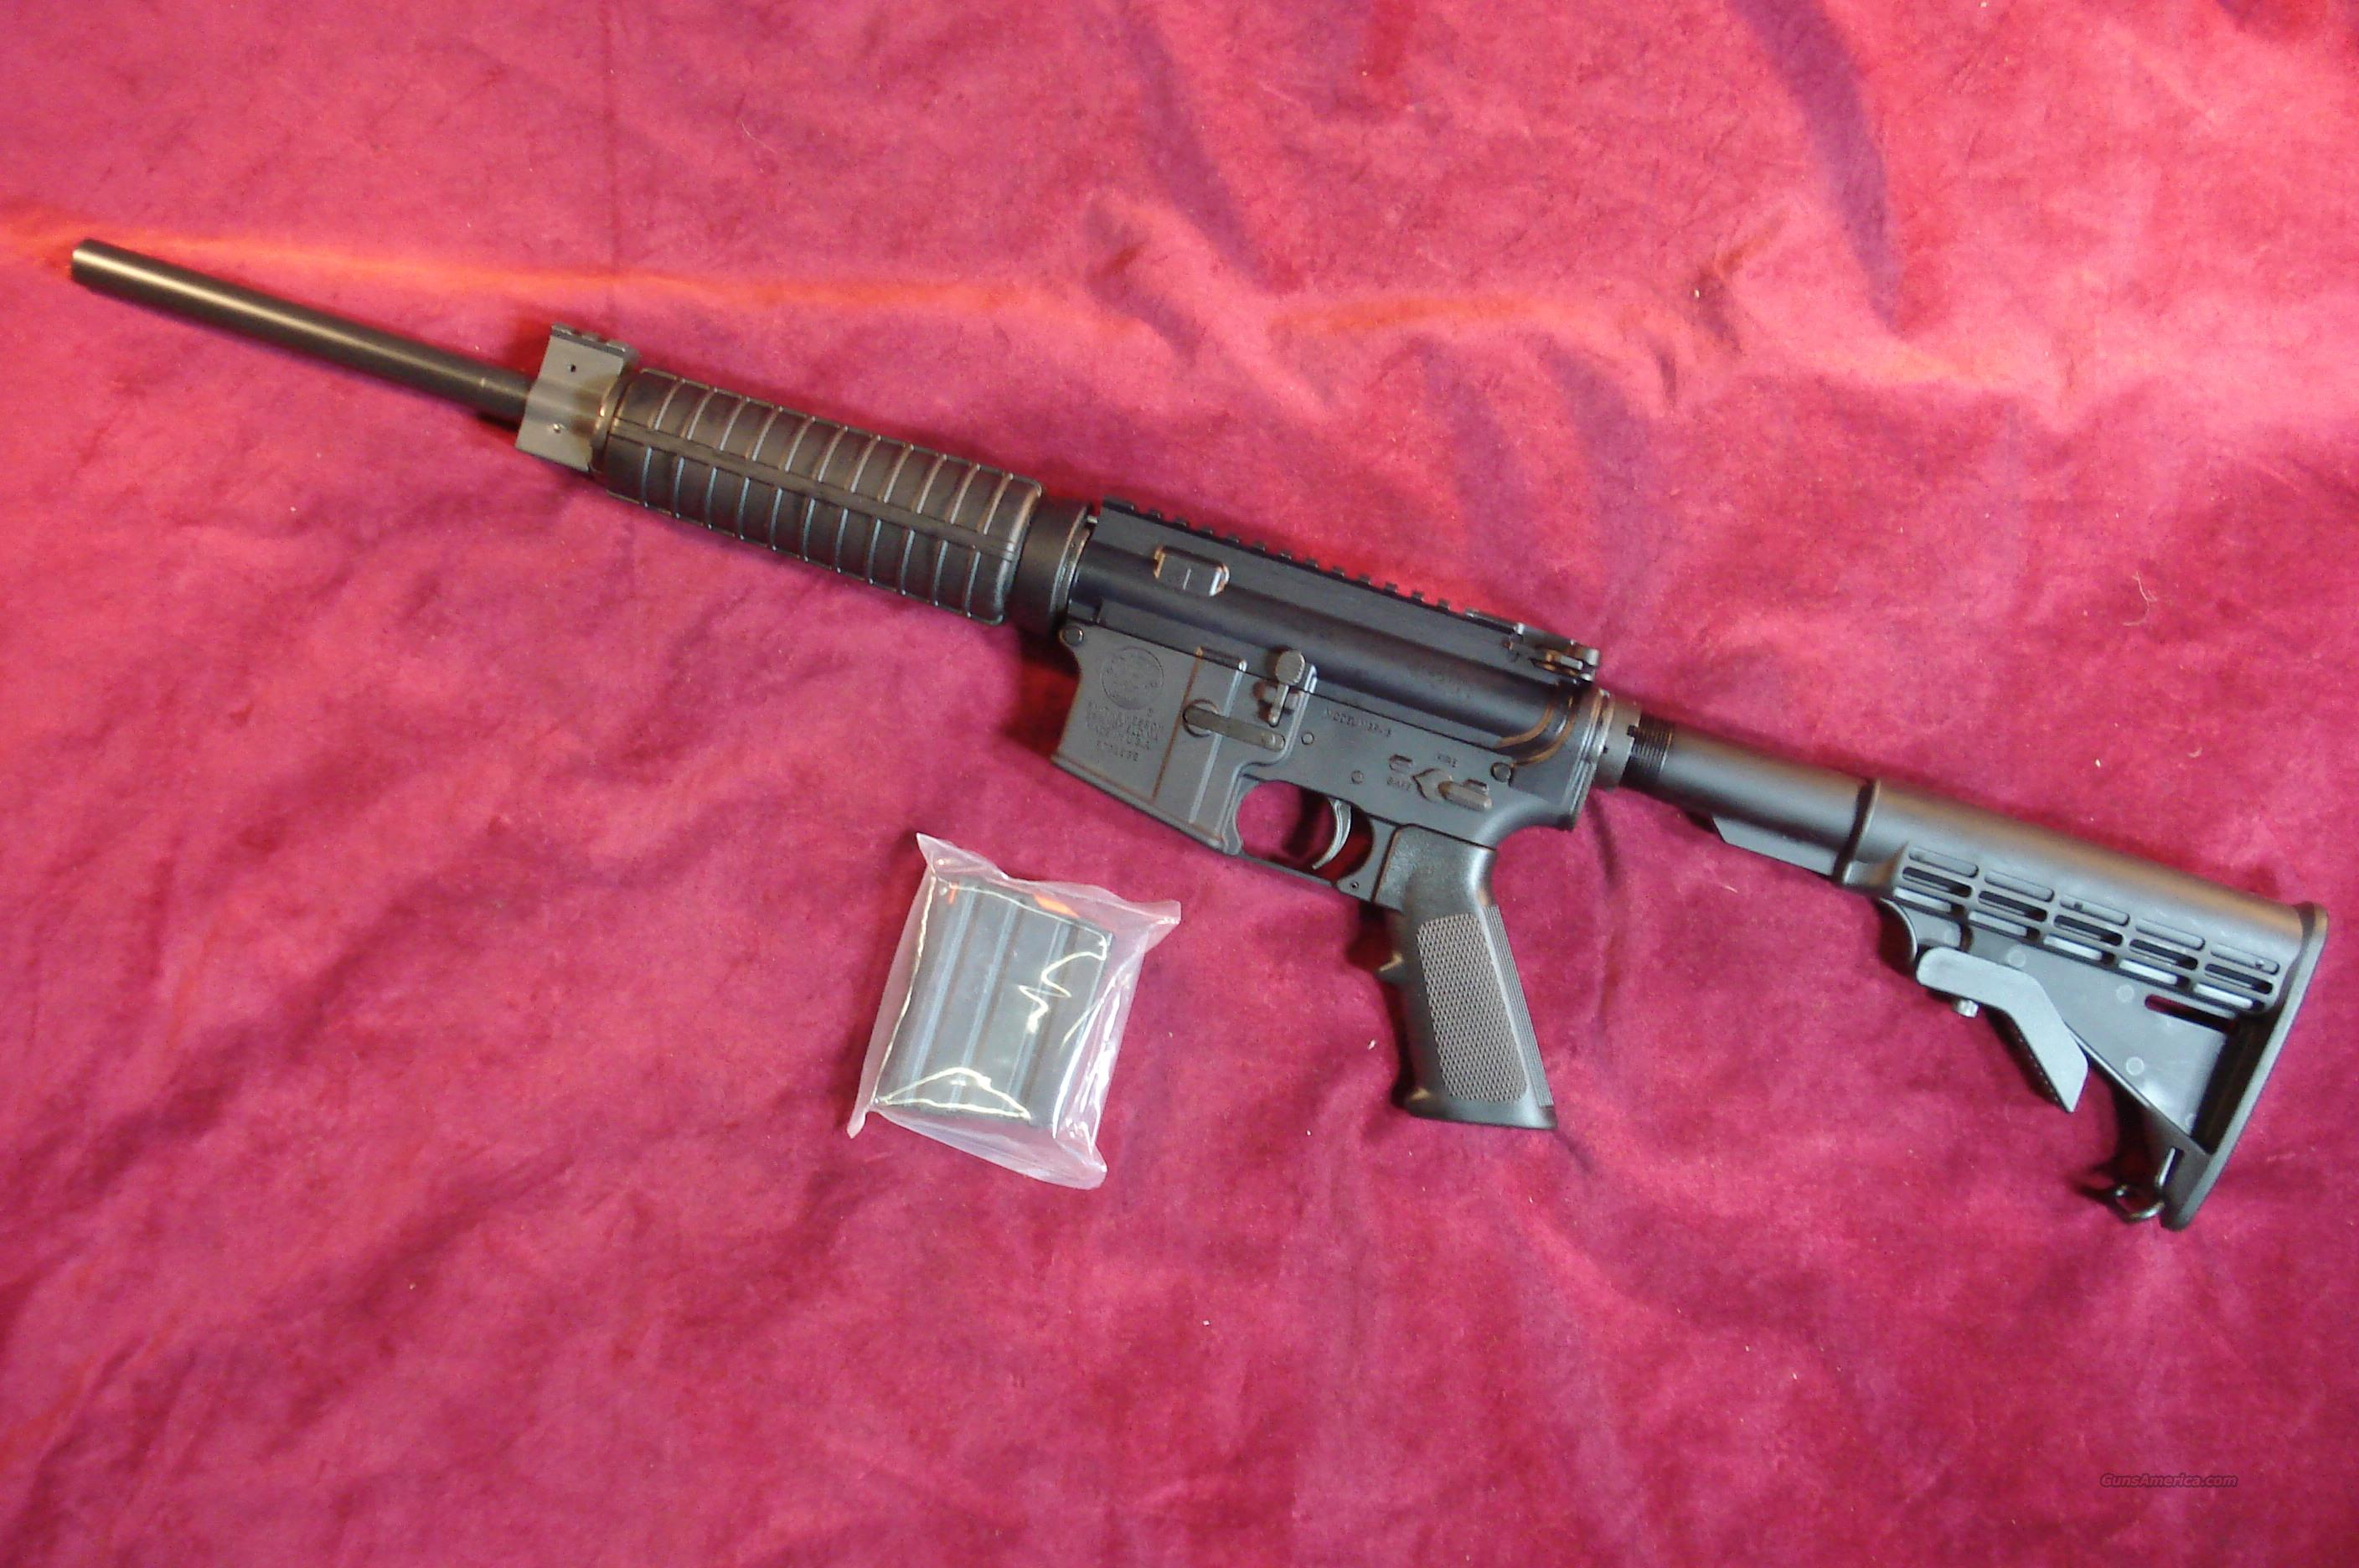 SMITH & WESSON 10 ROUND  M&P15OR ( OPTIC READY CARBINE) 223/5.56 CAL.NEW  Guns > Rifles > Smith & Wesson Rifles > M&P